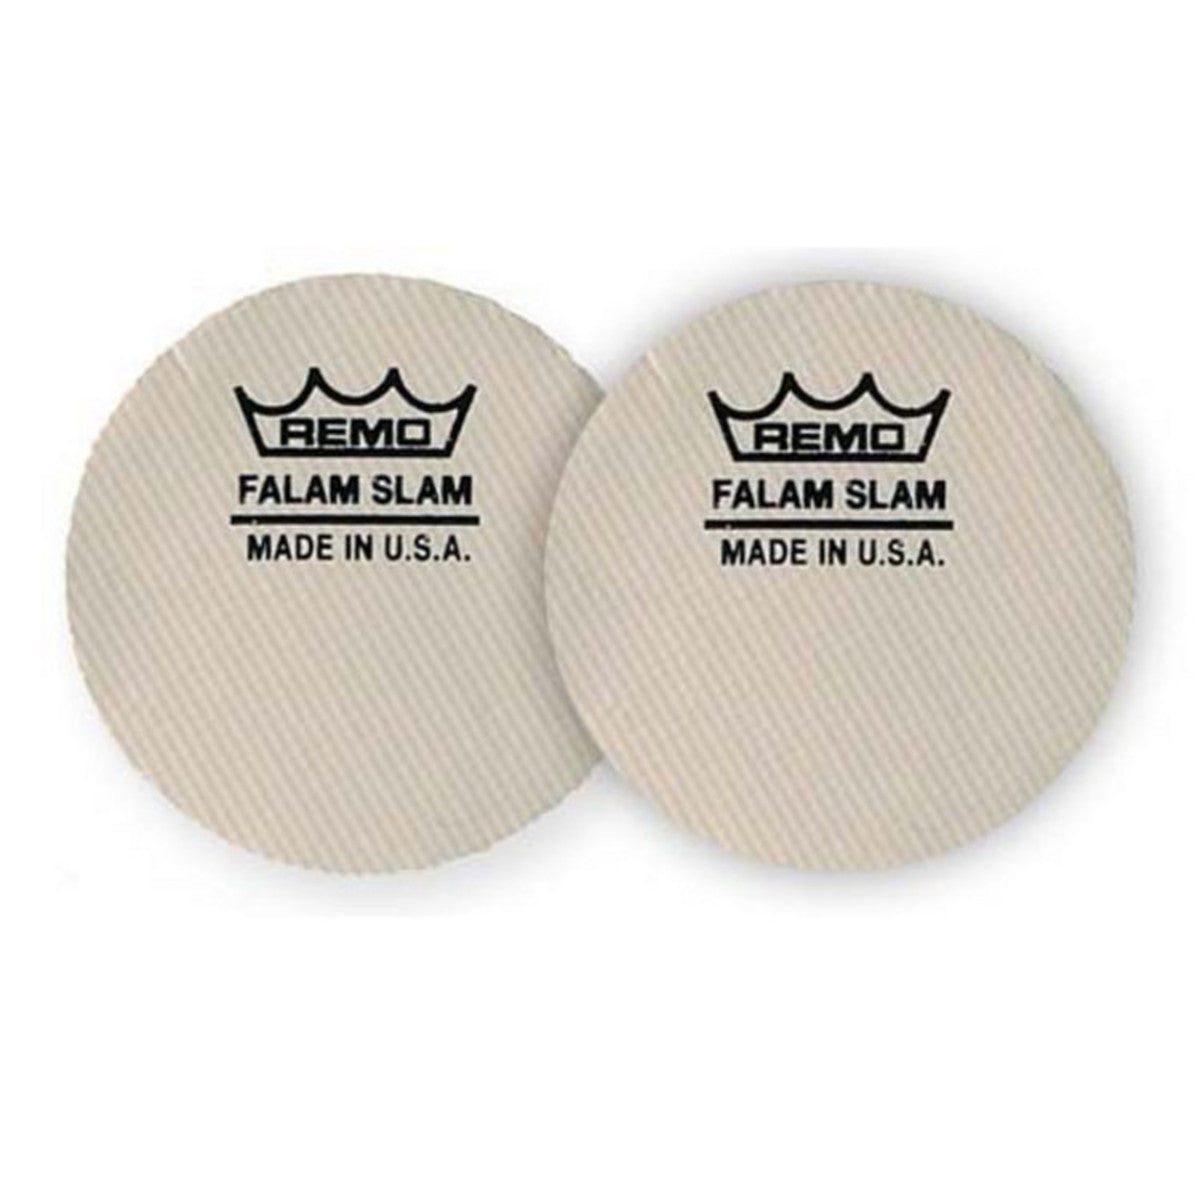 Remo 2.5'' Falam Slam Pads for Bass Drum Head